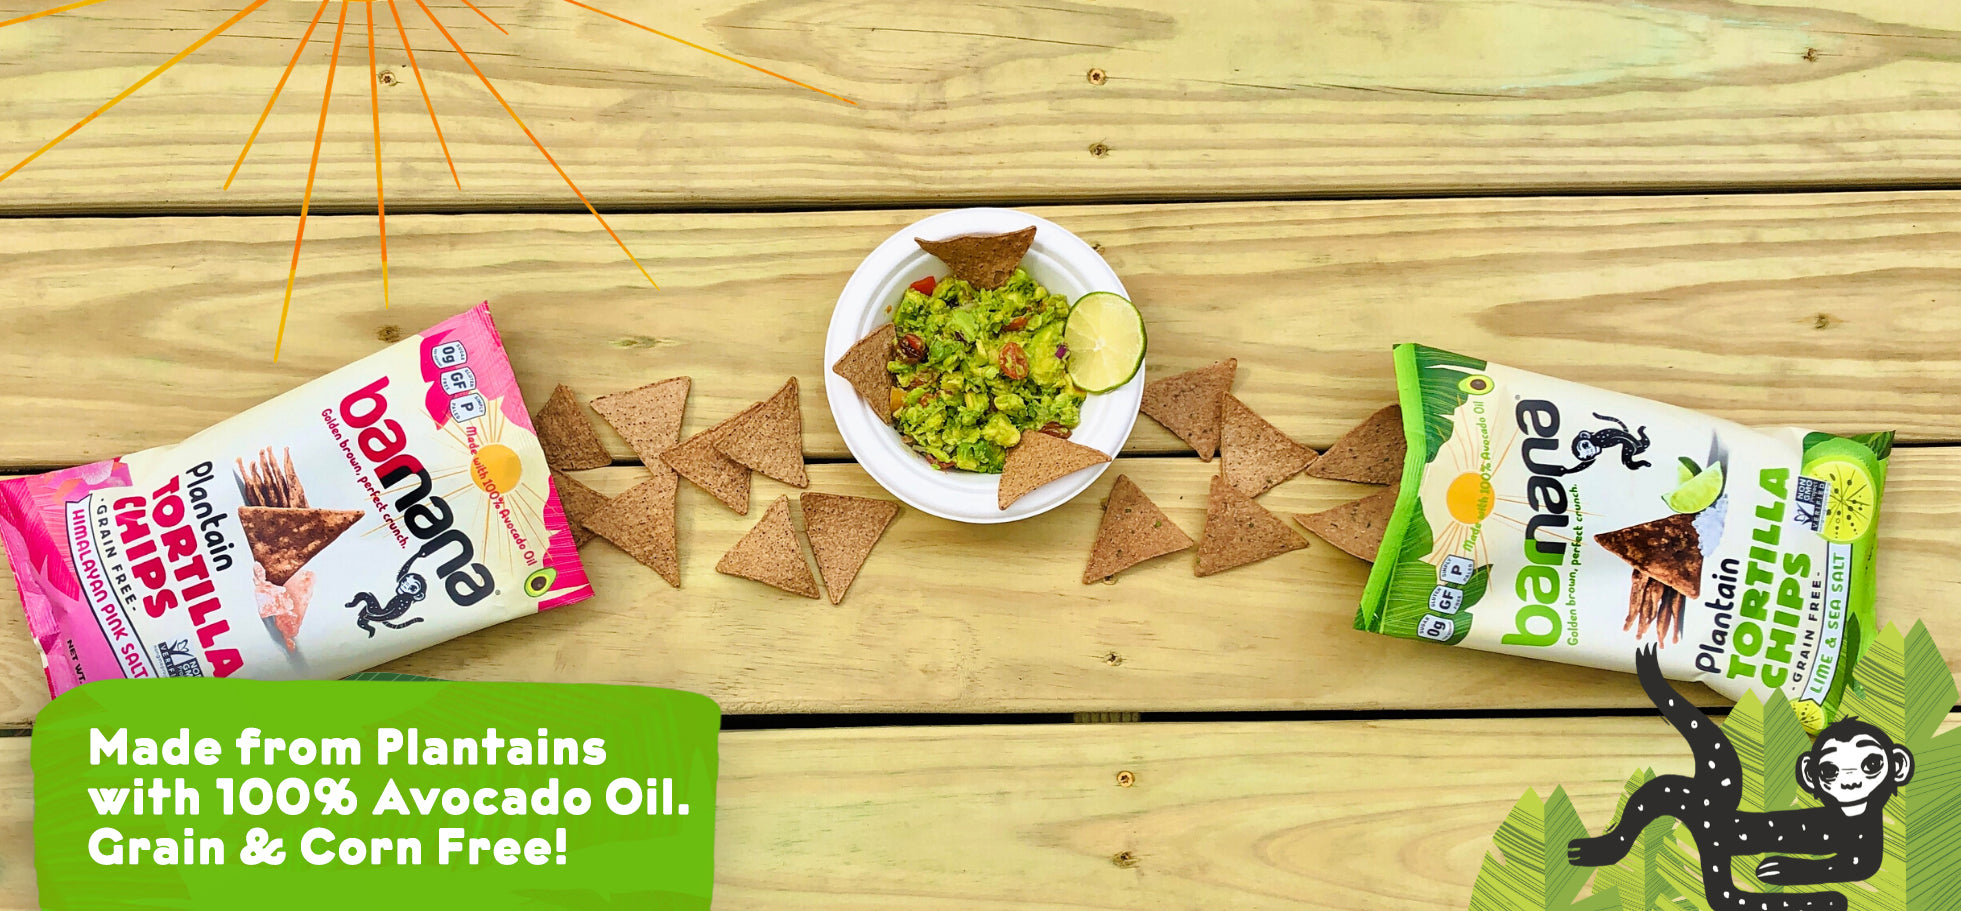 grain free tortilla chips - barnana plantain based